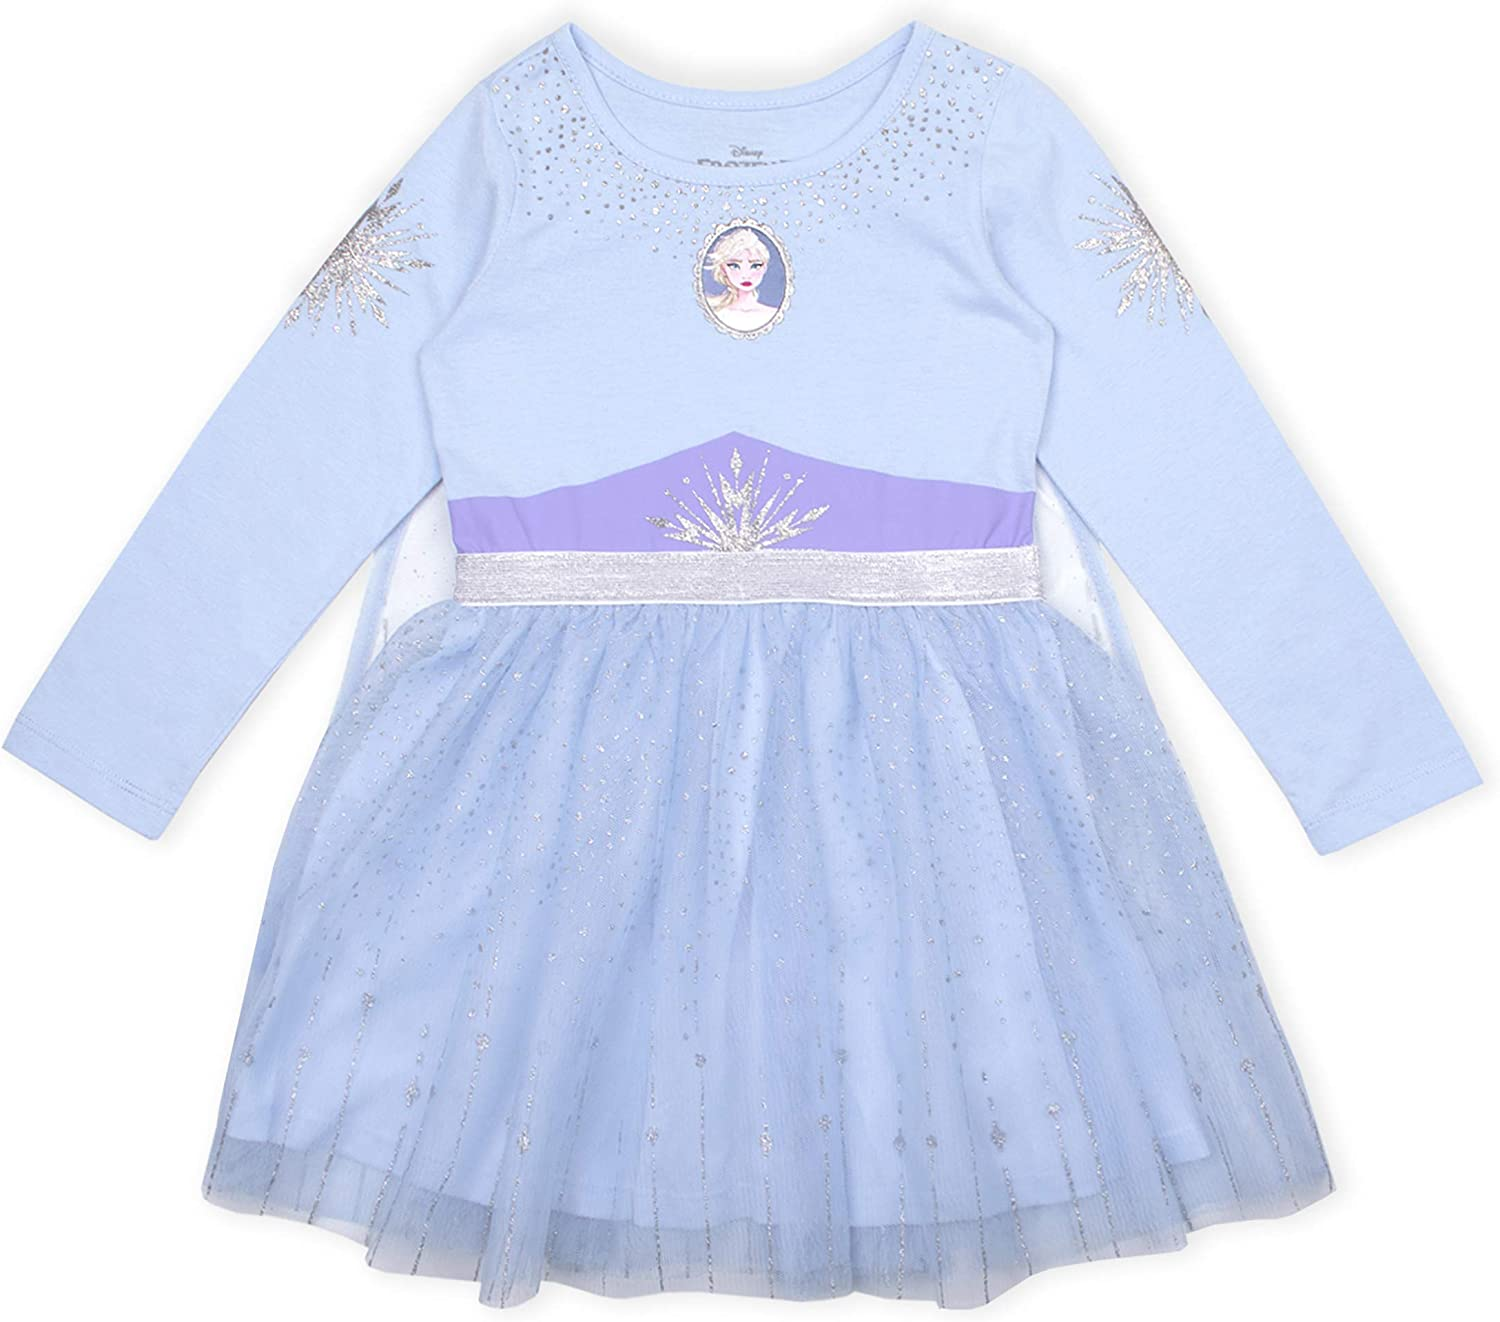 Disney Frozen II Elsa Dress for Girls